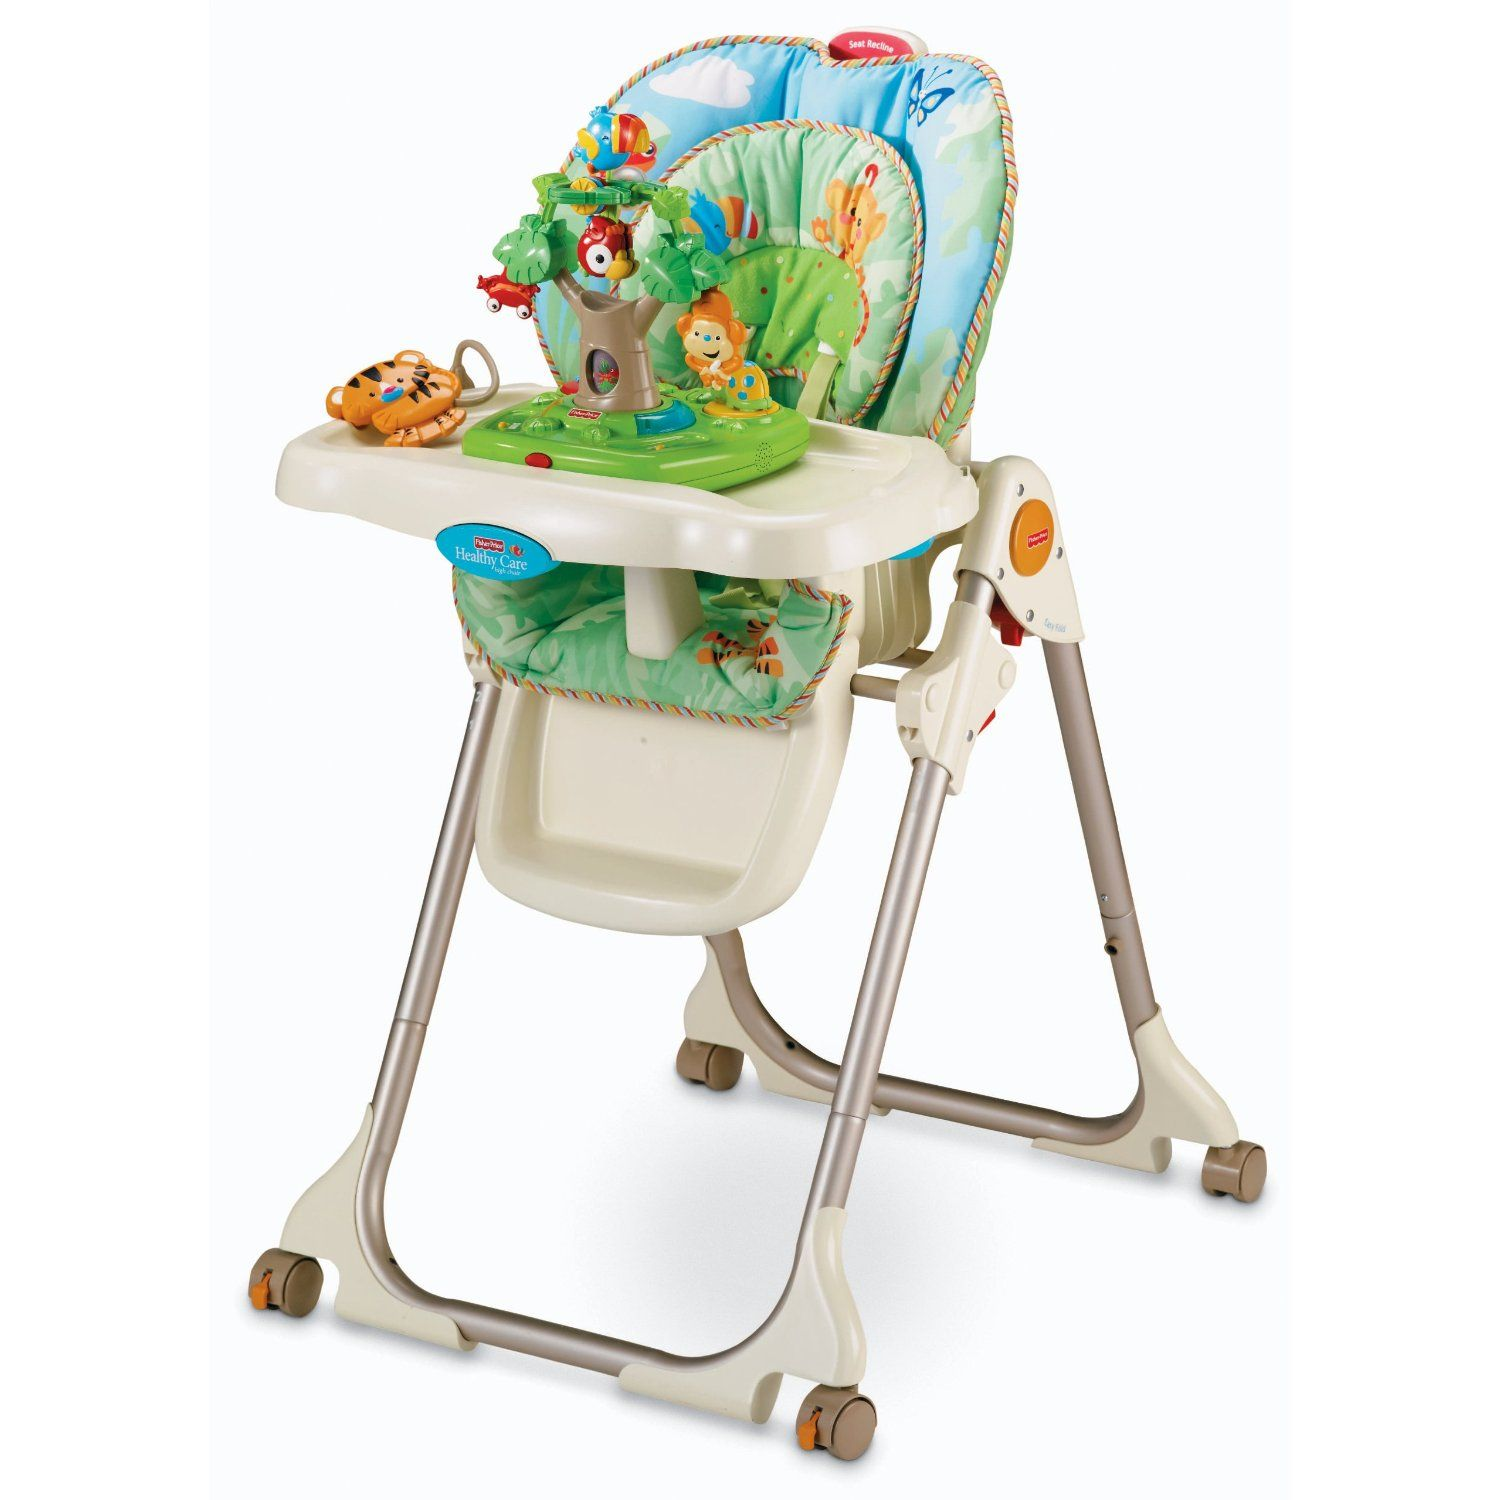 FisherPrice Rainforest High Chair (With images) High